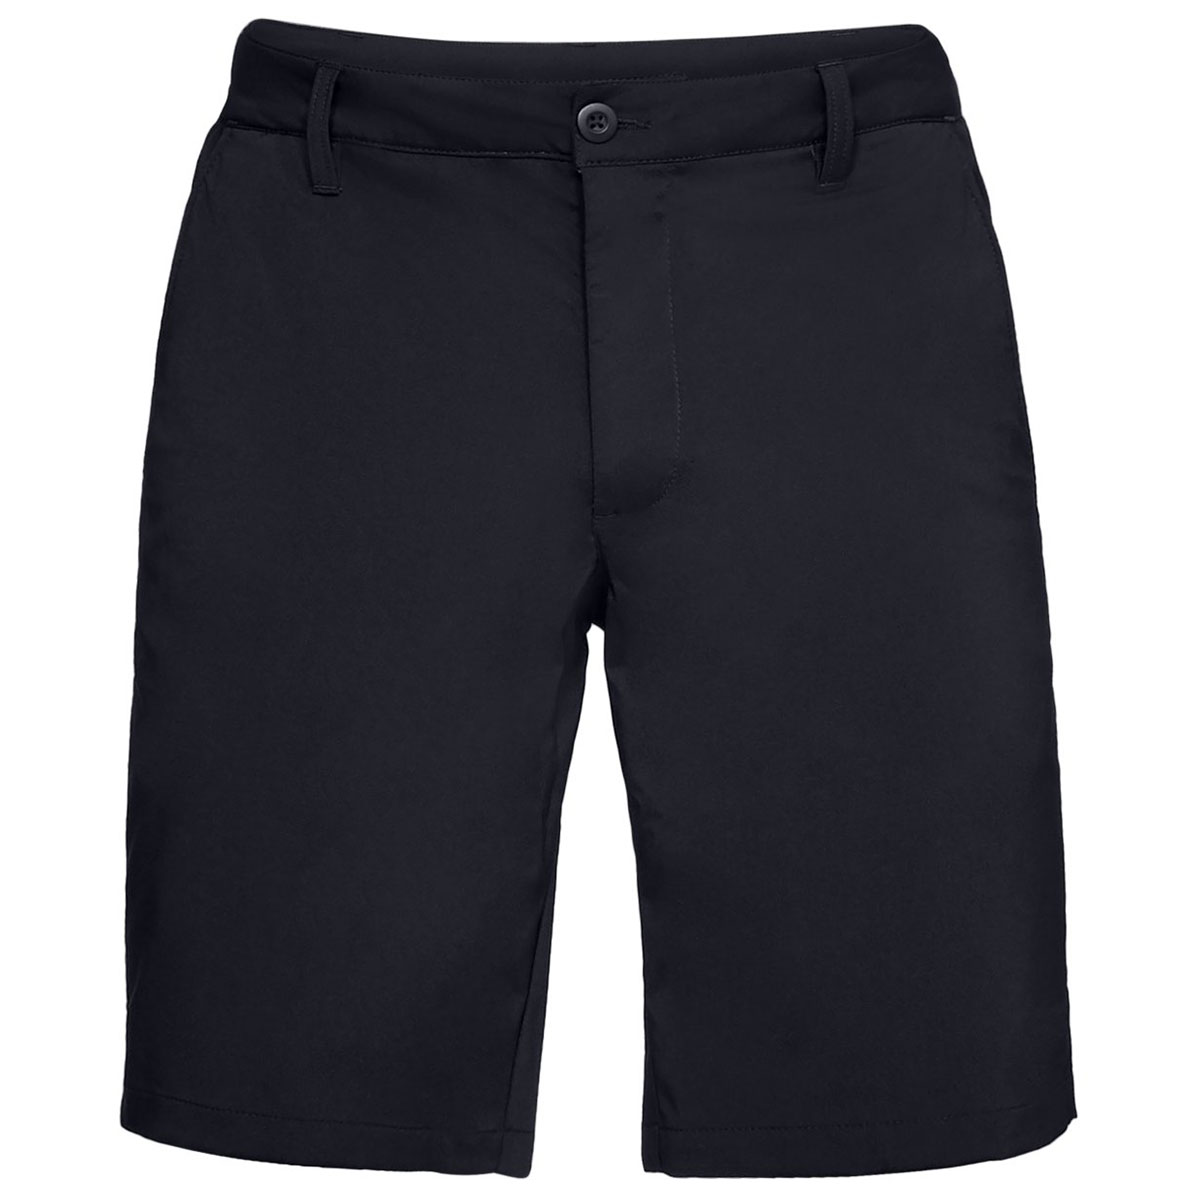 Under-Armour-Mens-2019-EU-Tech-Stretch-Soft-Tapered-Fitted-Golf-Shorts Indexbild 4